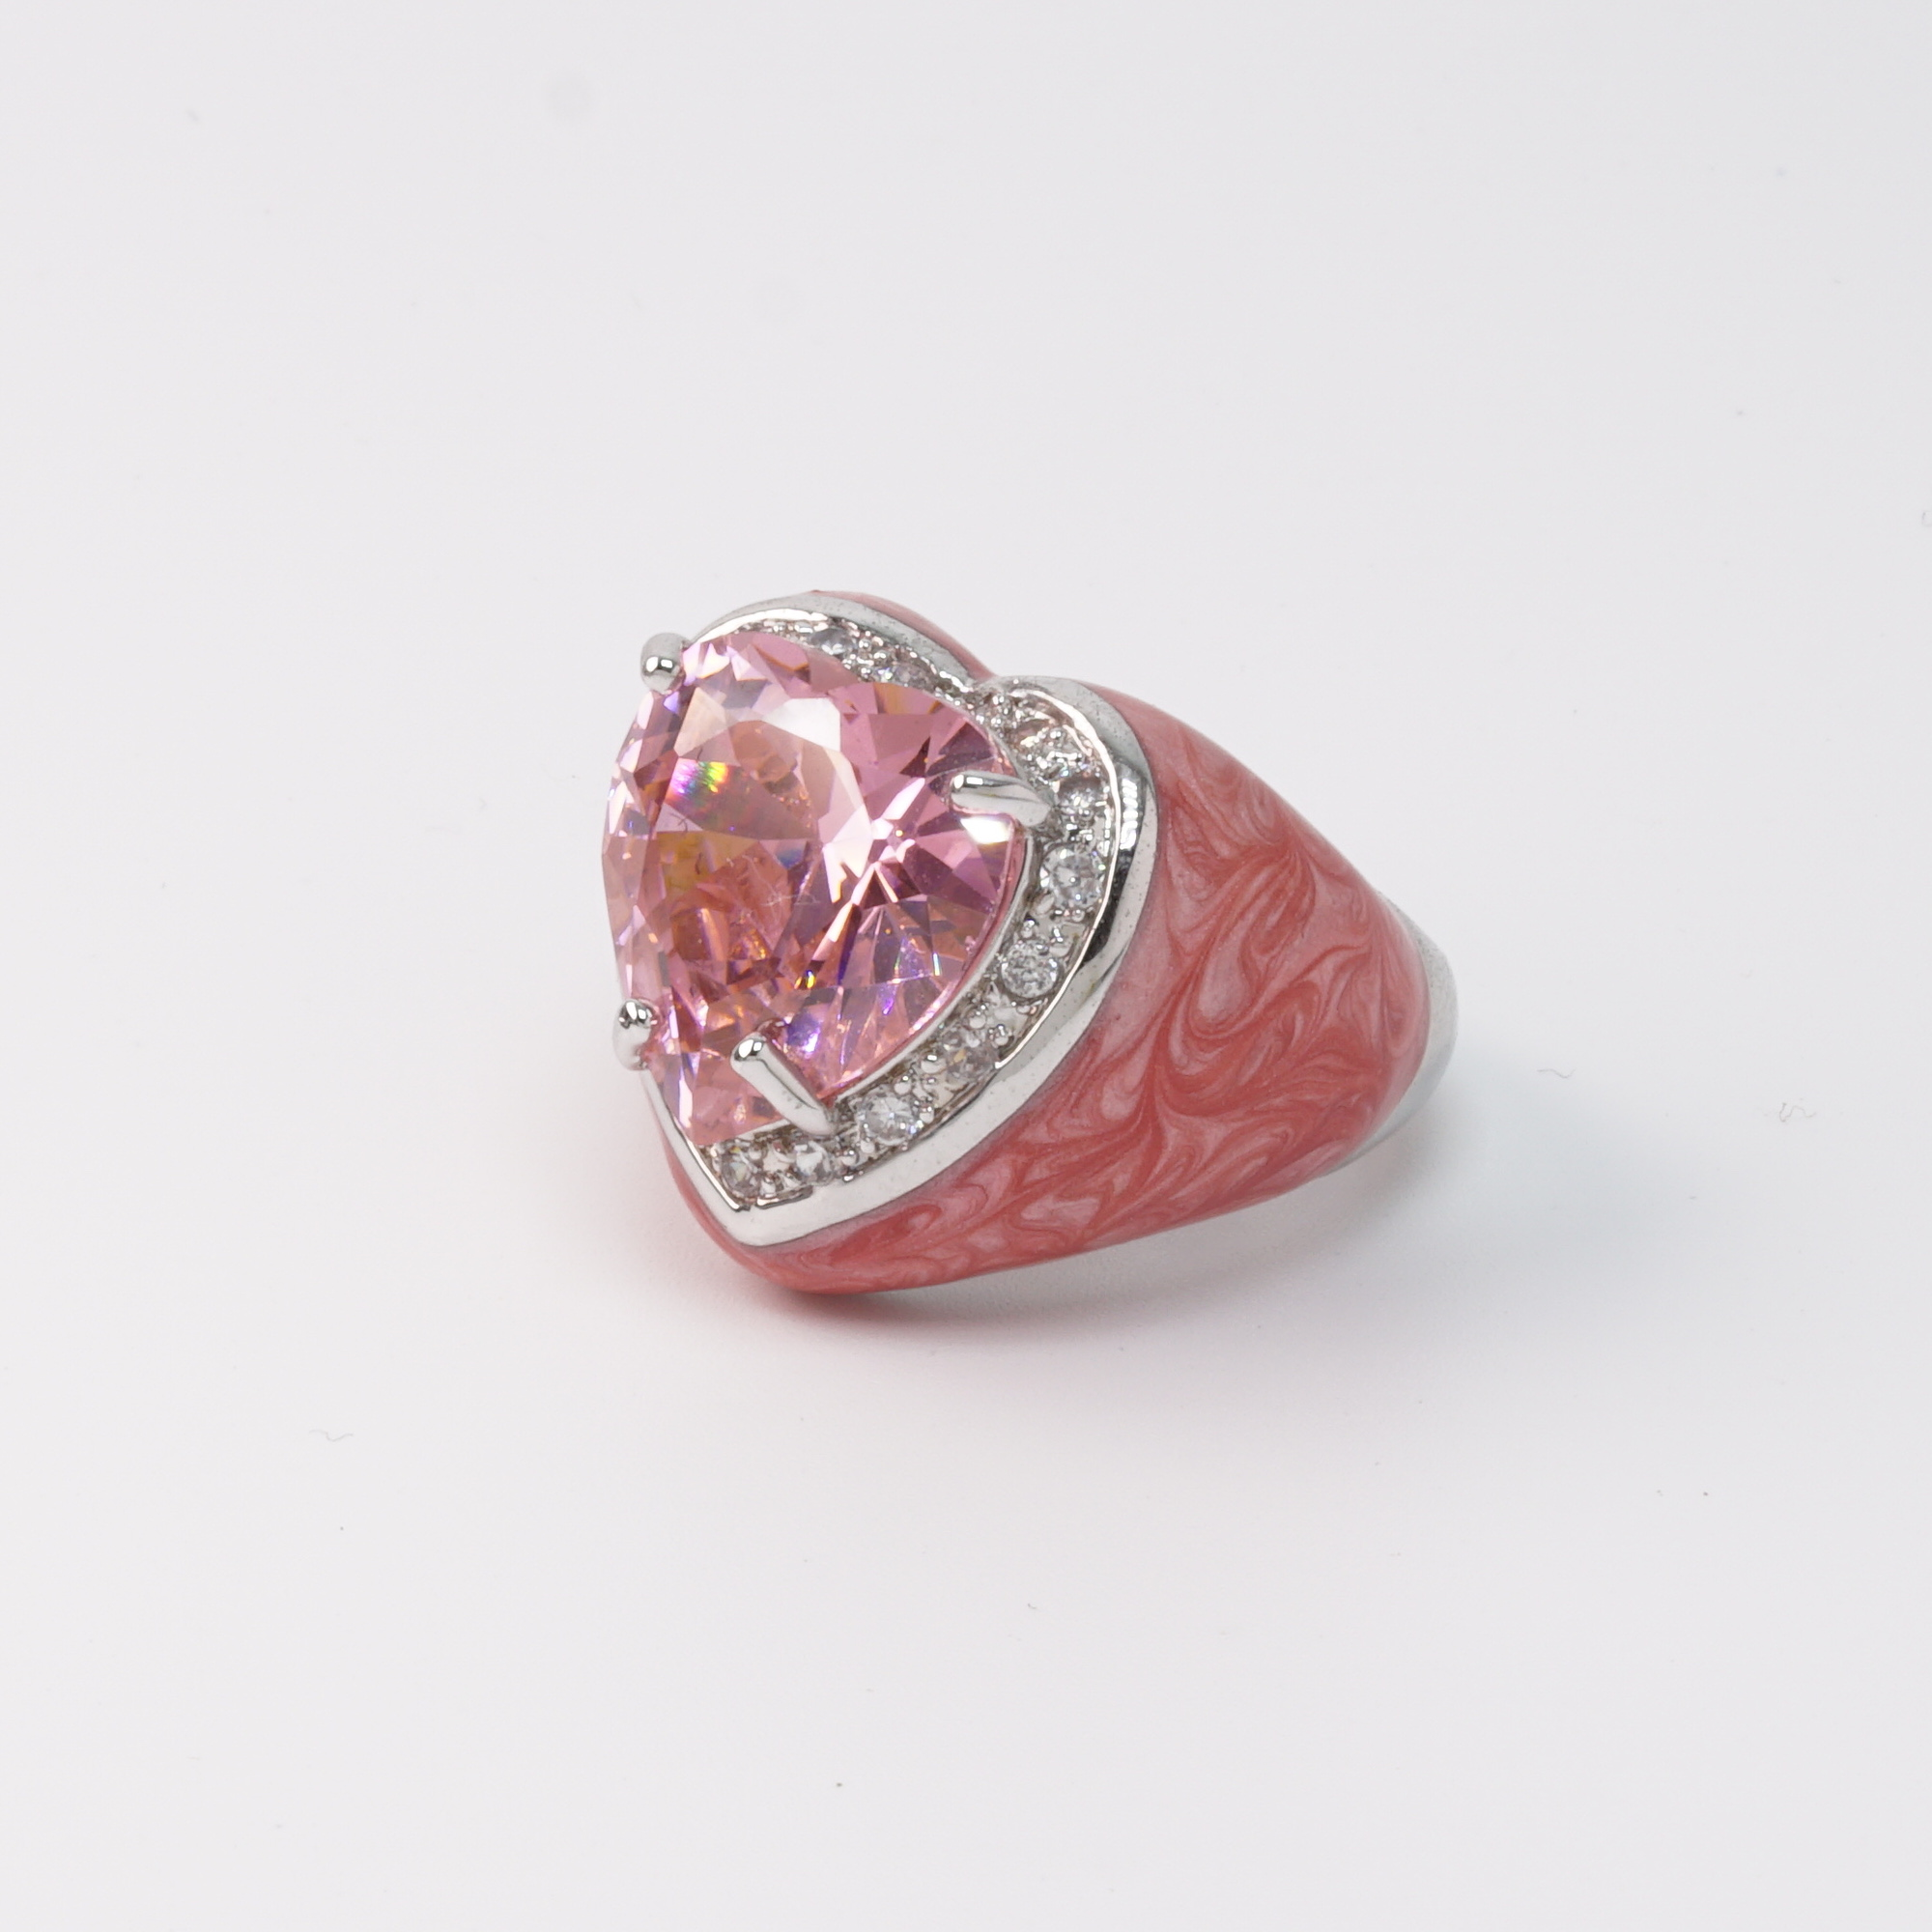 Pink Heart Ring side